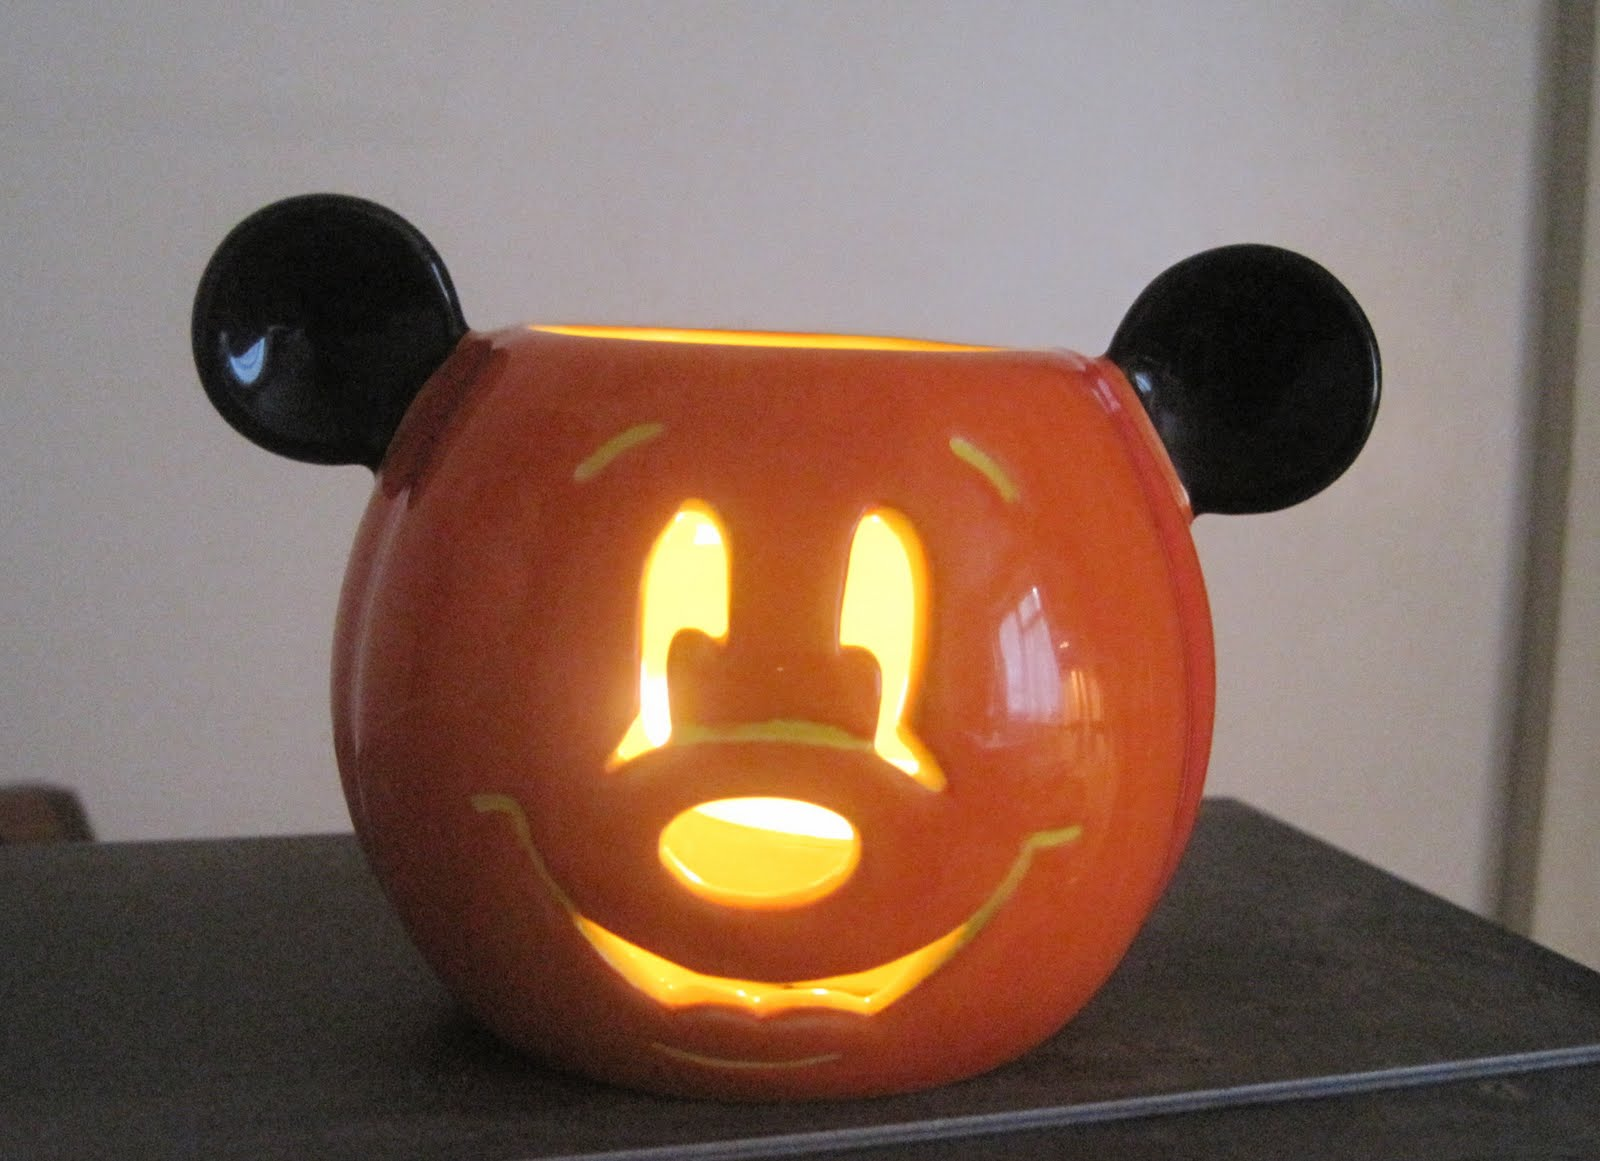 im not a big disney fan but i love the disneyhalloween decorations they come up with and this candle holder is so cute